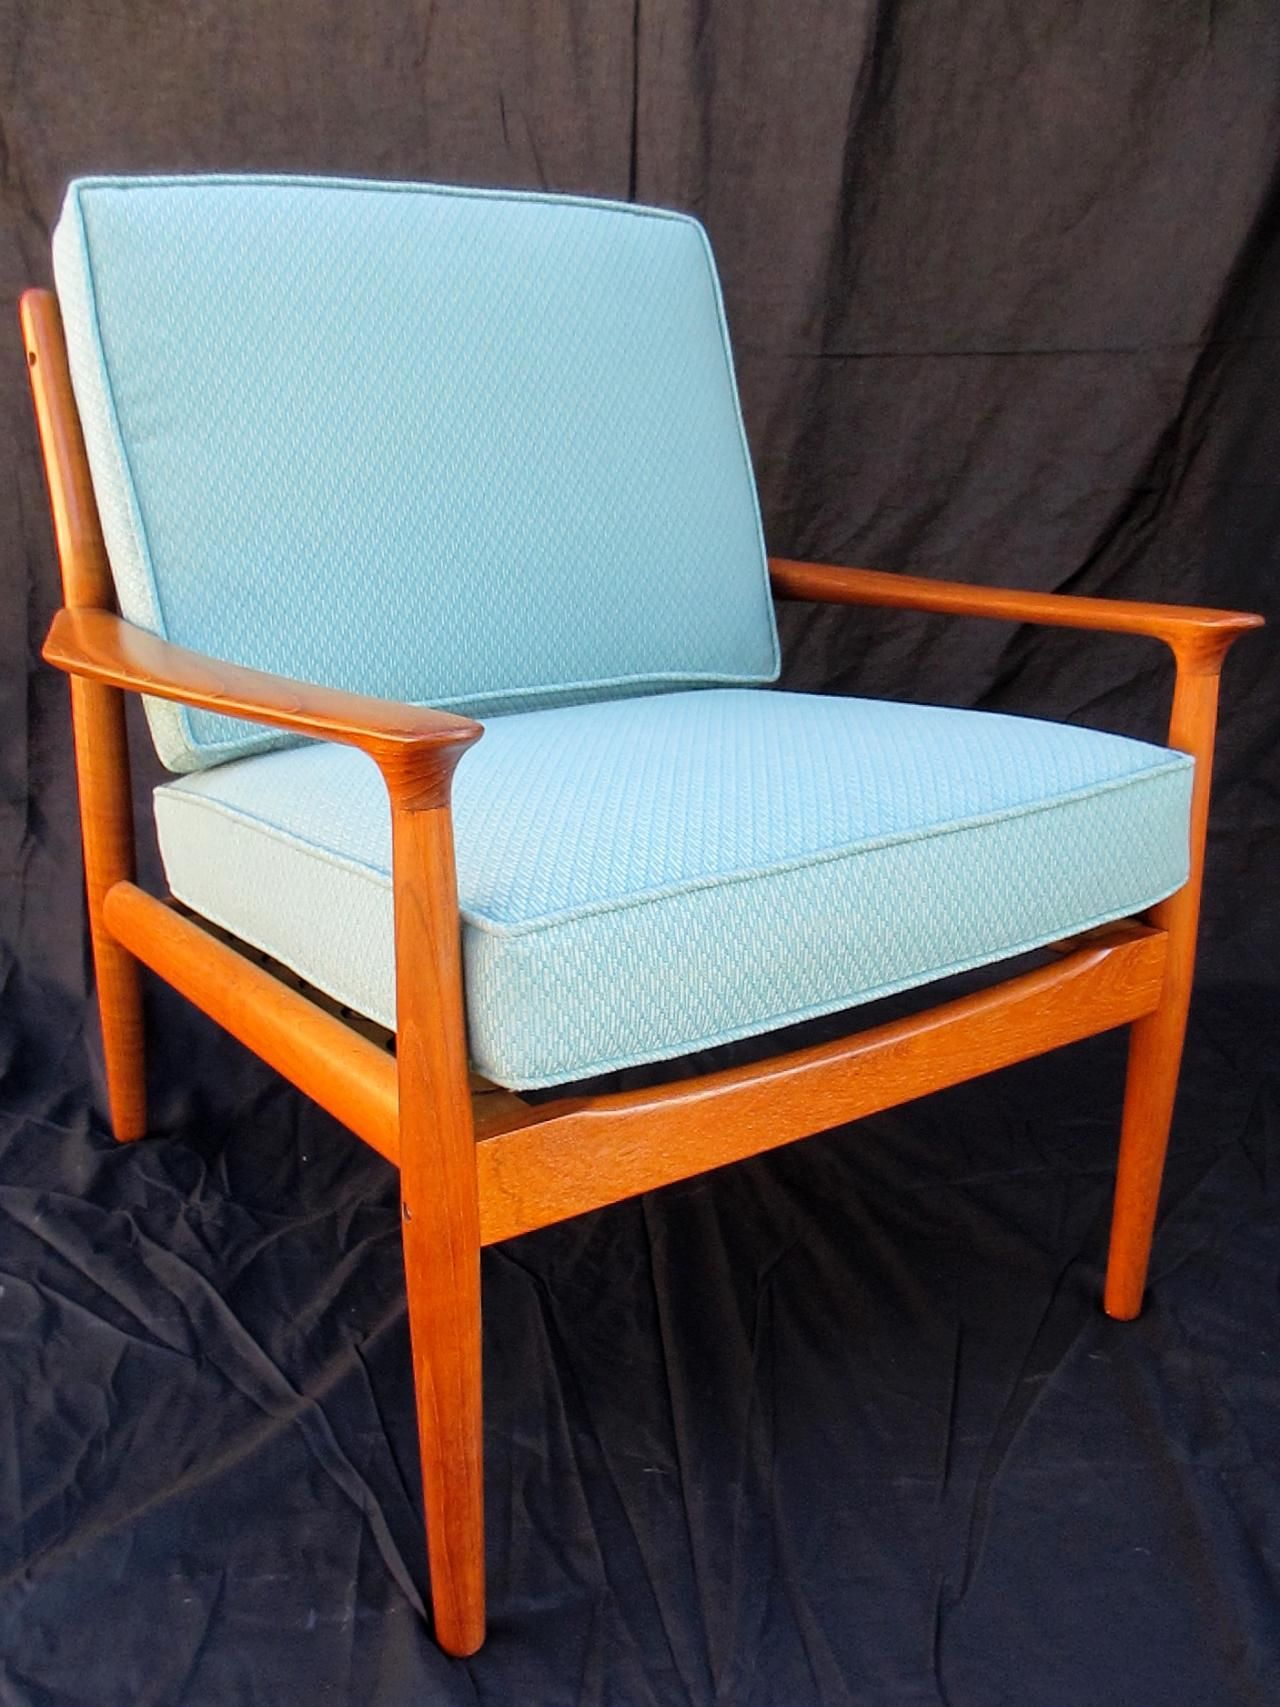 ^ 1000+ images about DIY Midcentury Modern on Pinterest Mid ...